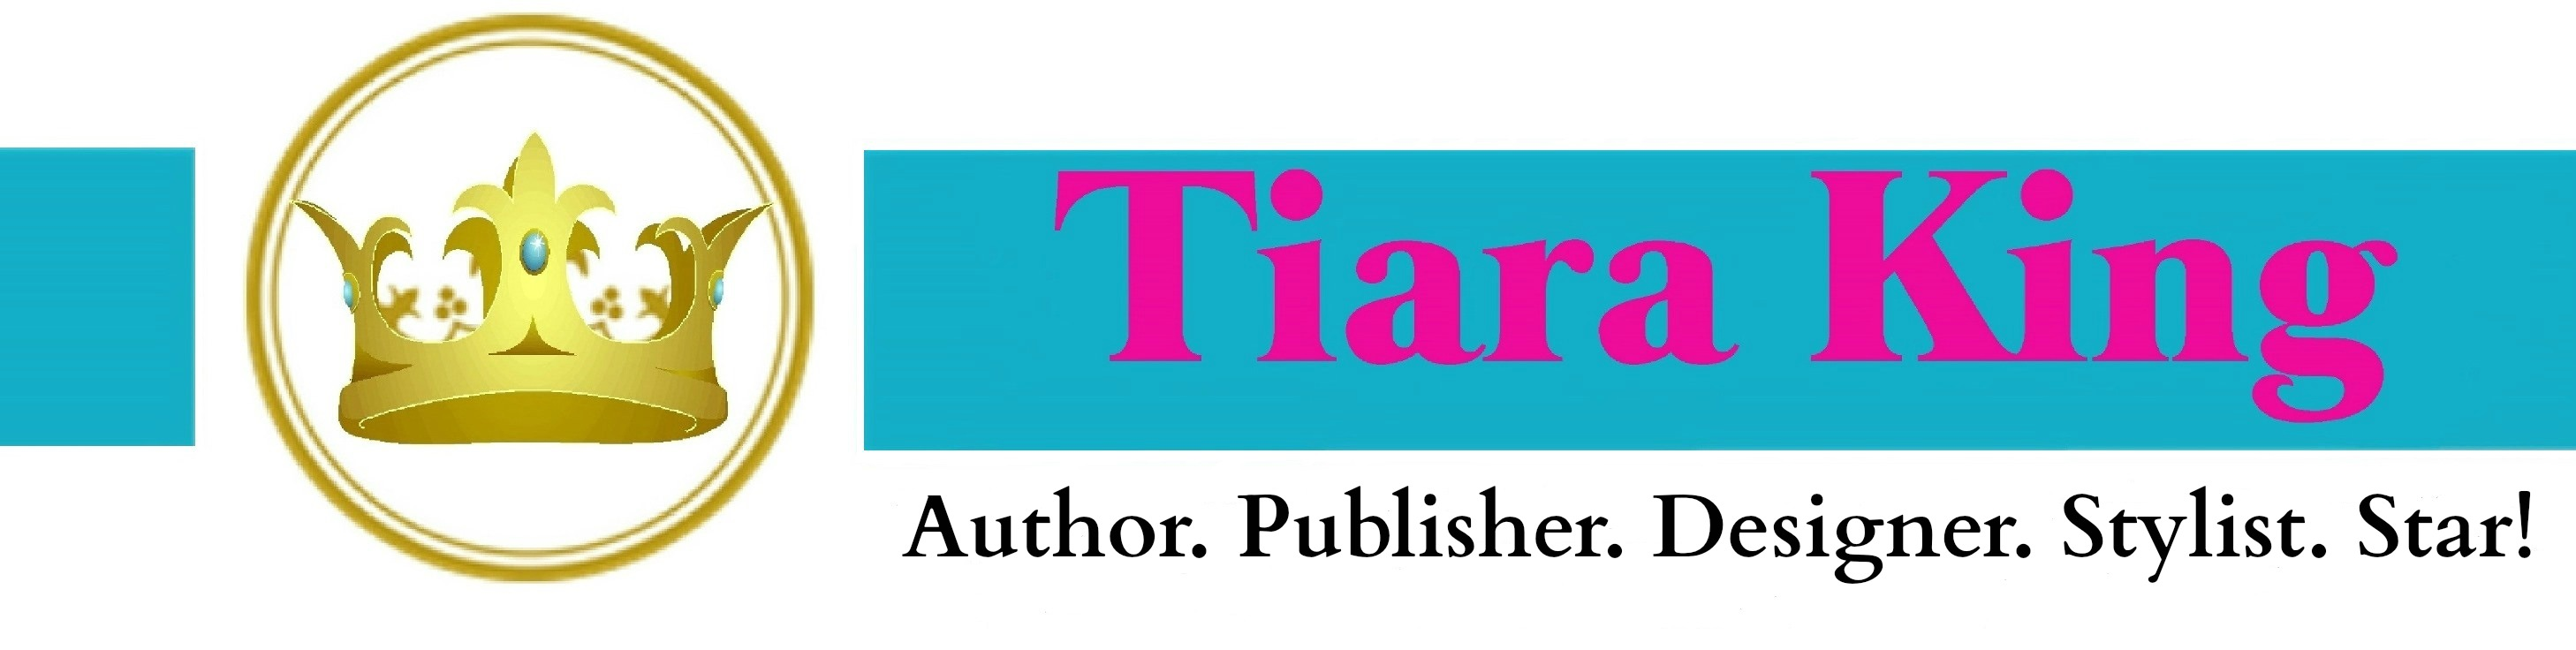 VISIT TIARA KING'S WEBSITE